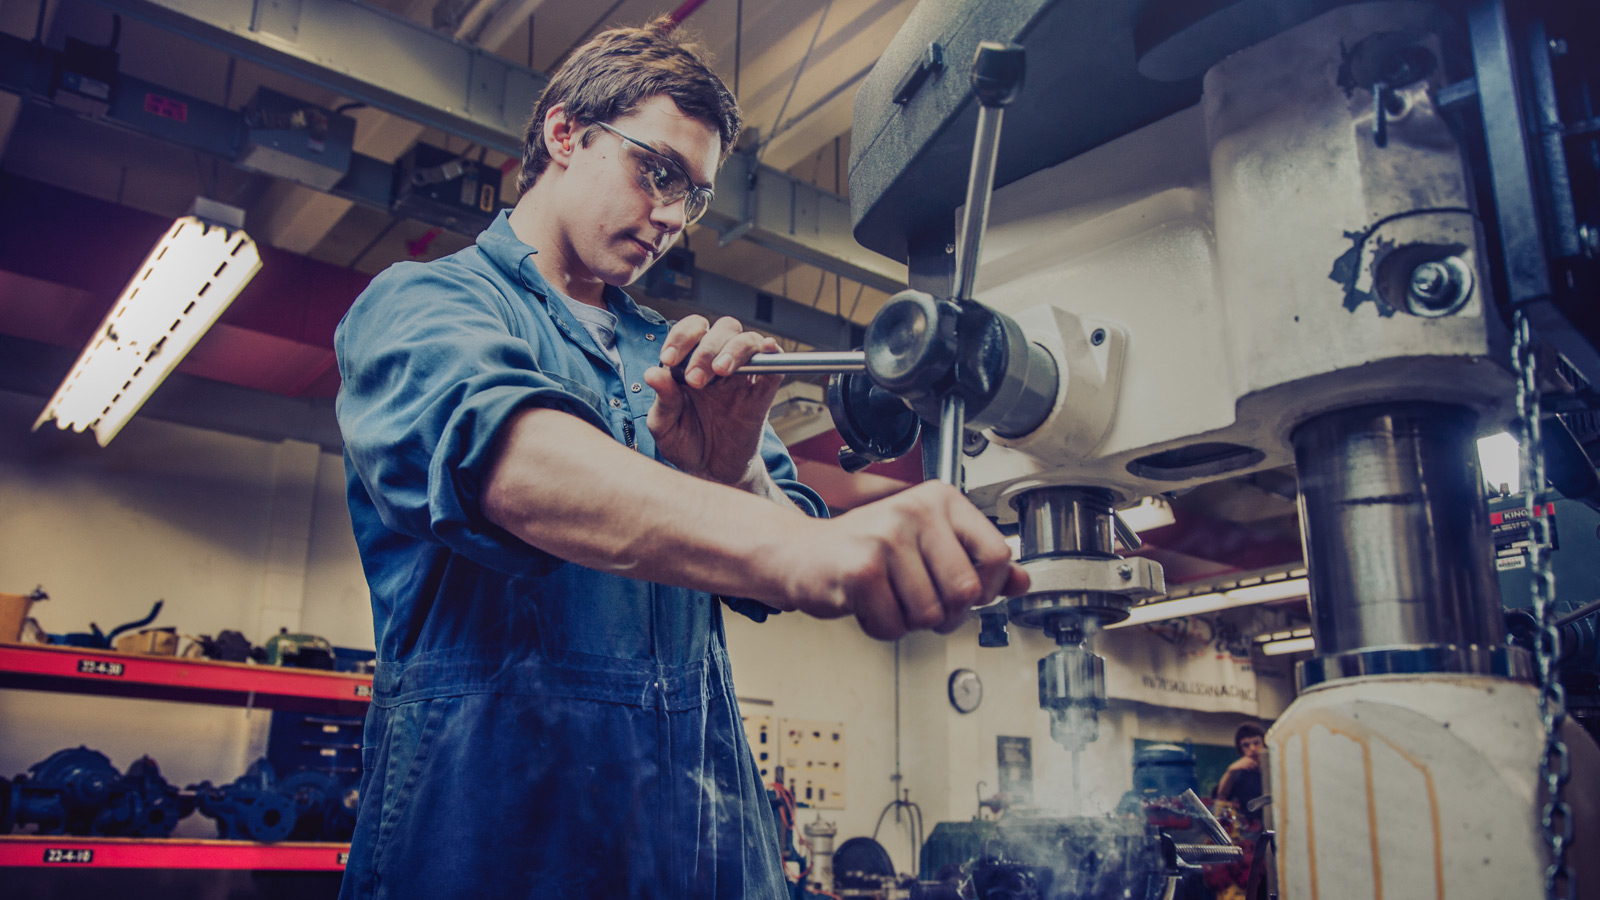 being an industrial machinery mechanic essay As an industrial machinery mechanic and maintenance worker, i maintain and  repair factory equipment and other  how can you become a industrial  machinery mechanic  onet online-summary report, ohio labor market  information.